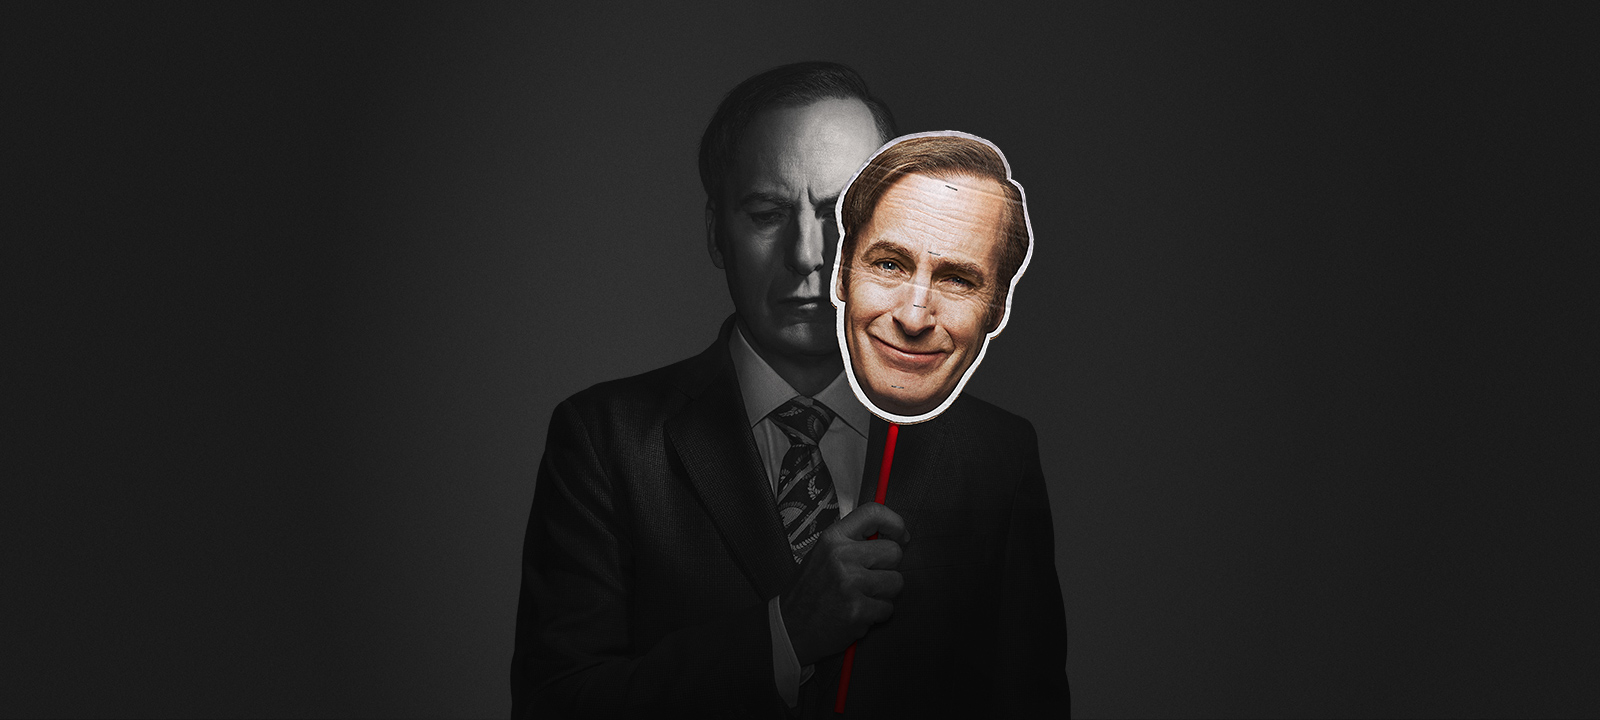 02_800x600_MobileWeb_HomeHero_better-call-saul-season-4-key-art